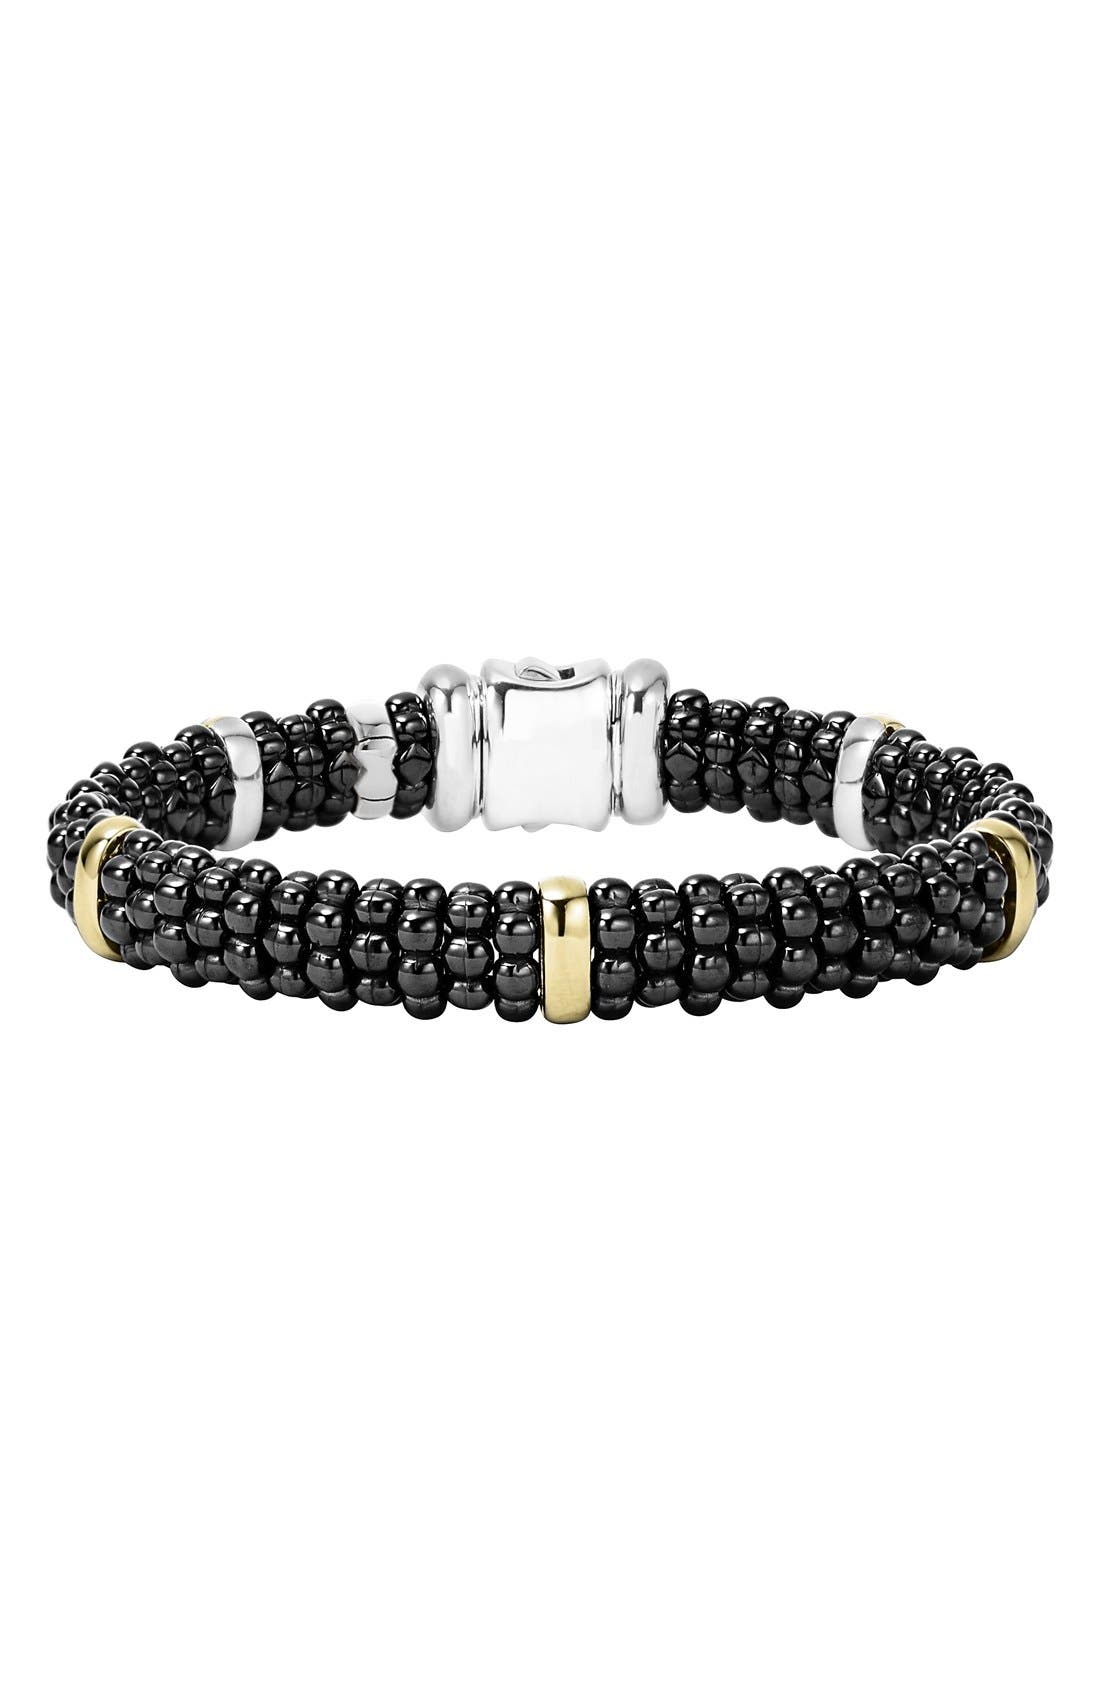 'Black Caviar' Rope Bracelet,                         Main,                         color, BLACK CAVIAR/ GOLD